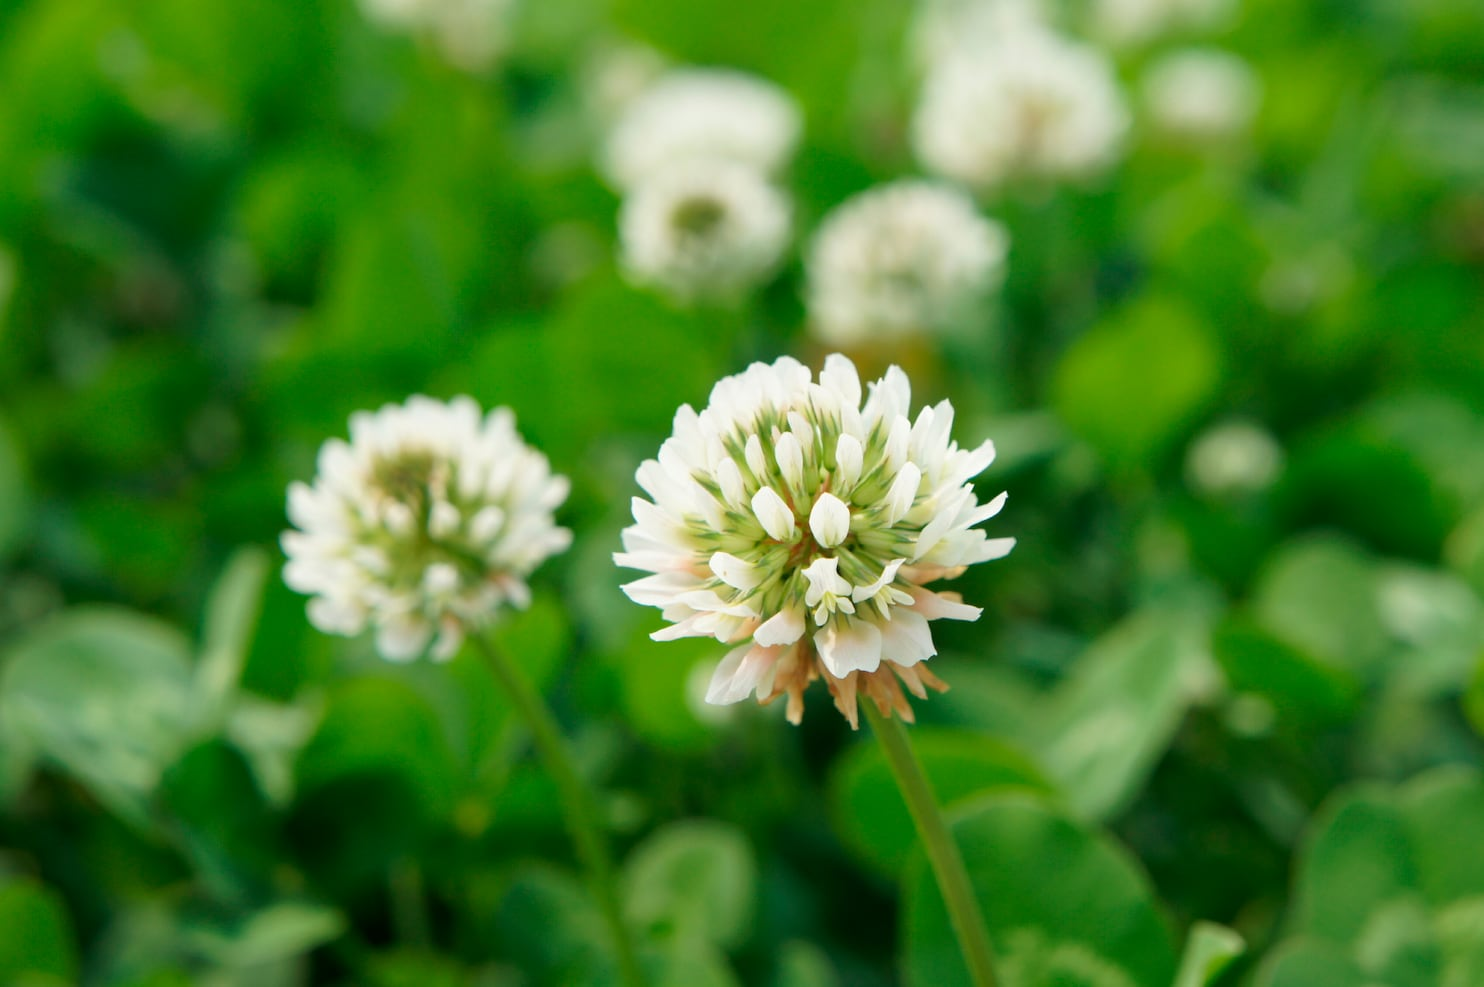 Captivating Weeds That Can Ruin Your Lawn Washington Post How To Get Rid Clover Flowers Clover Mites Outside How To Get Rid houzz-03 How To Get Rid Of Clover